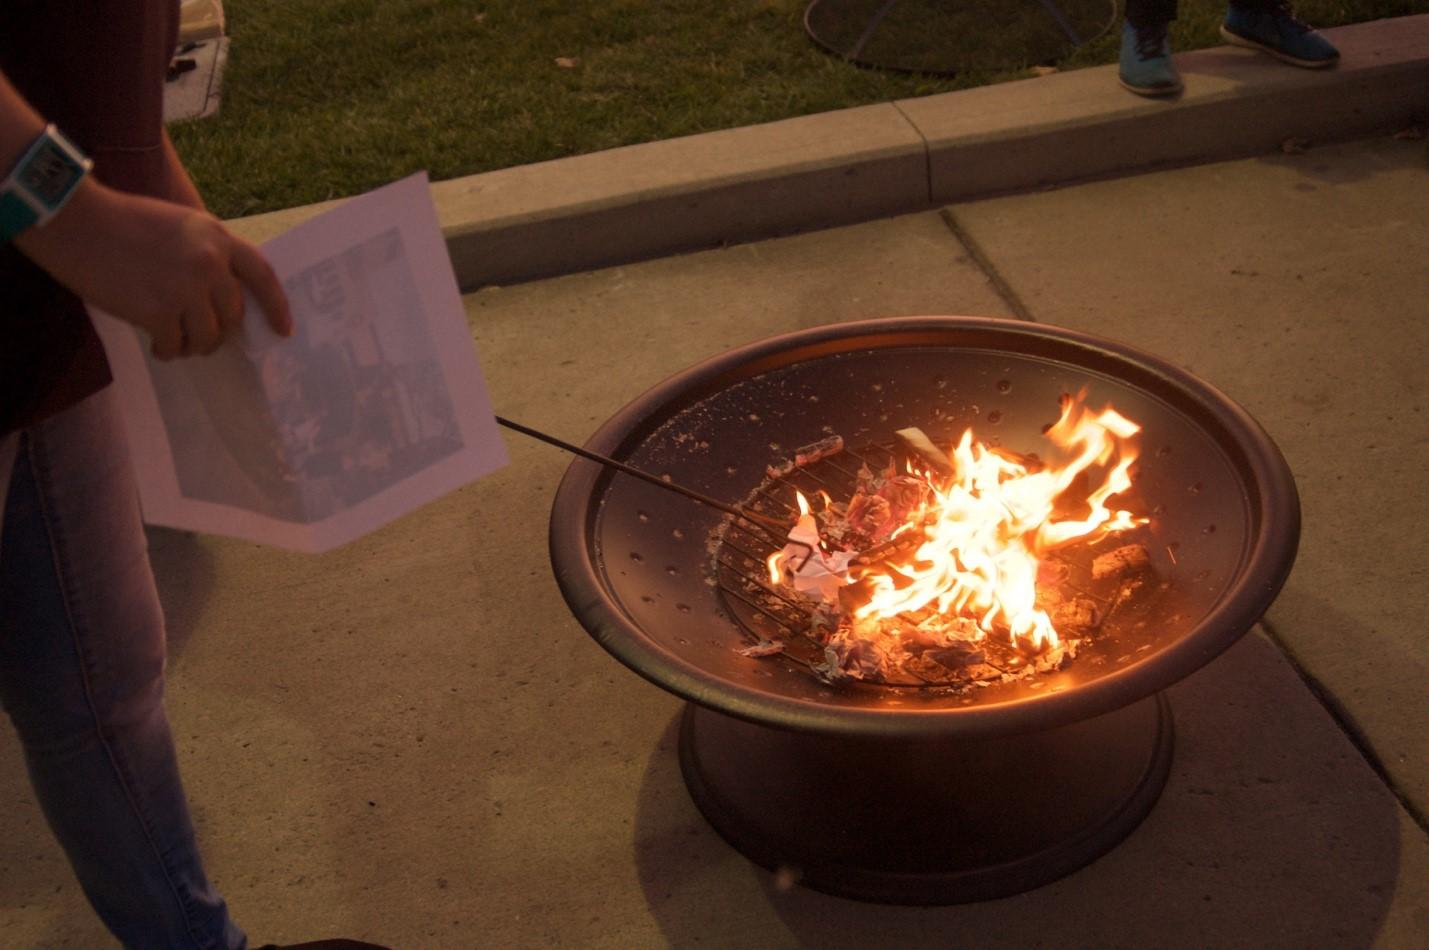 A woman burns photos of a man who sexually assaulted her during Take Back the Night.